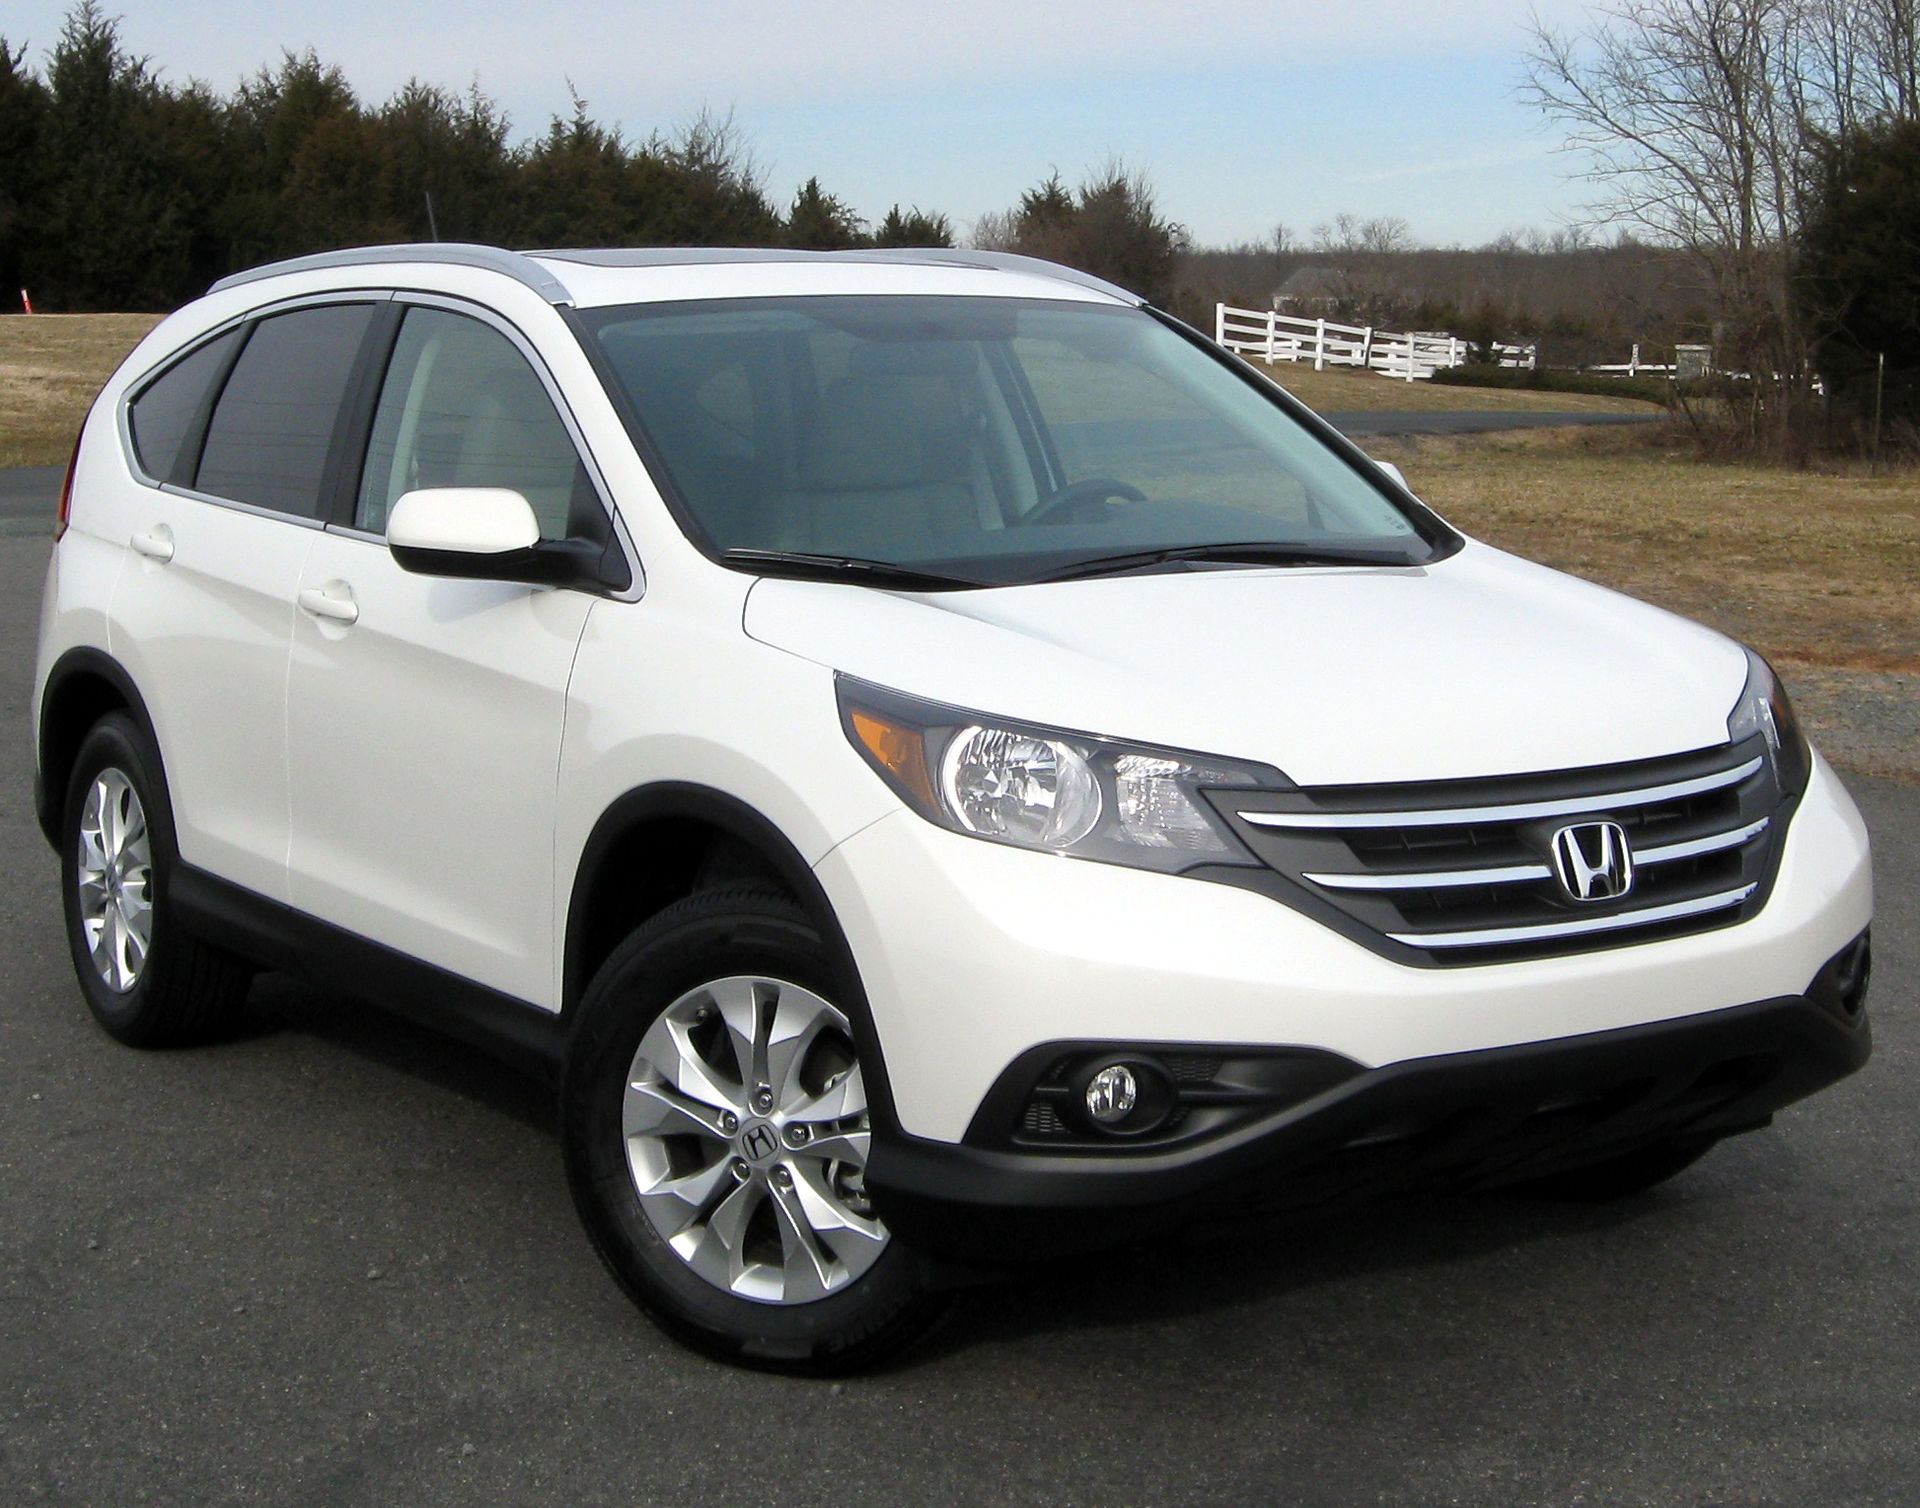 Honda cr v wikipedia for Truecar com honda crv